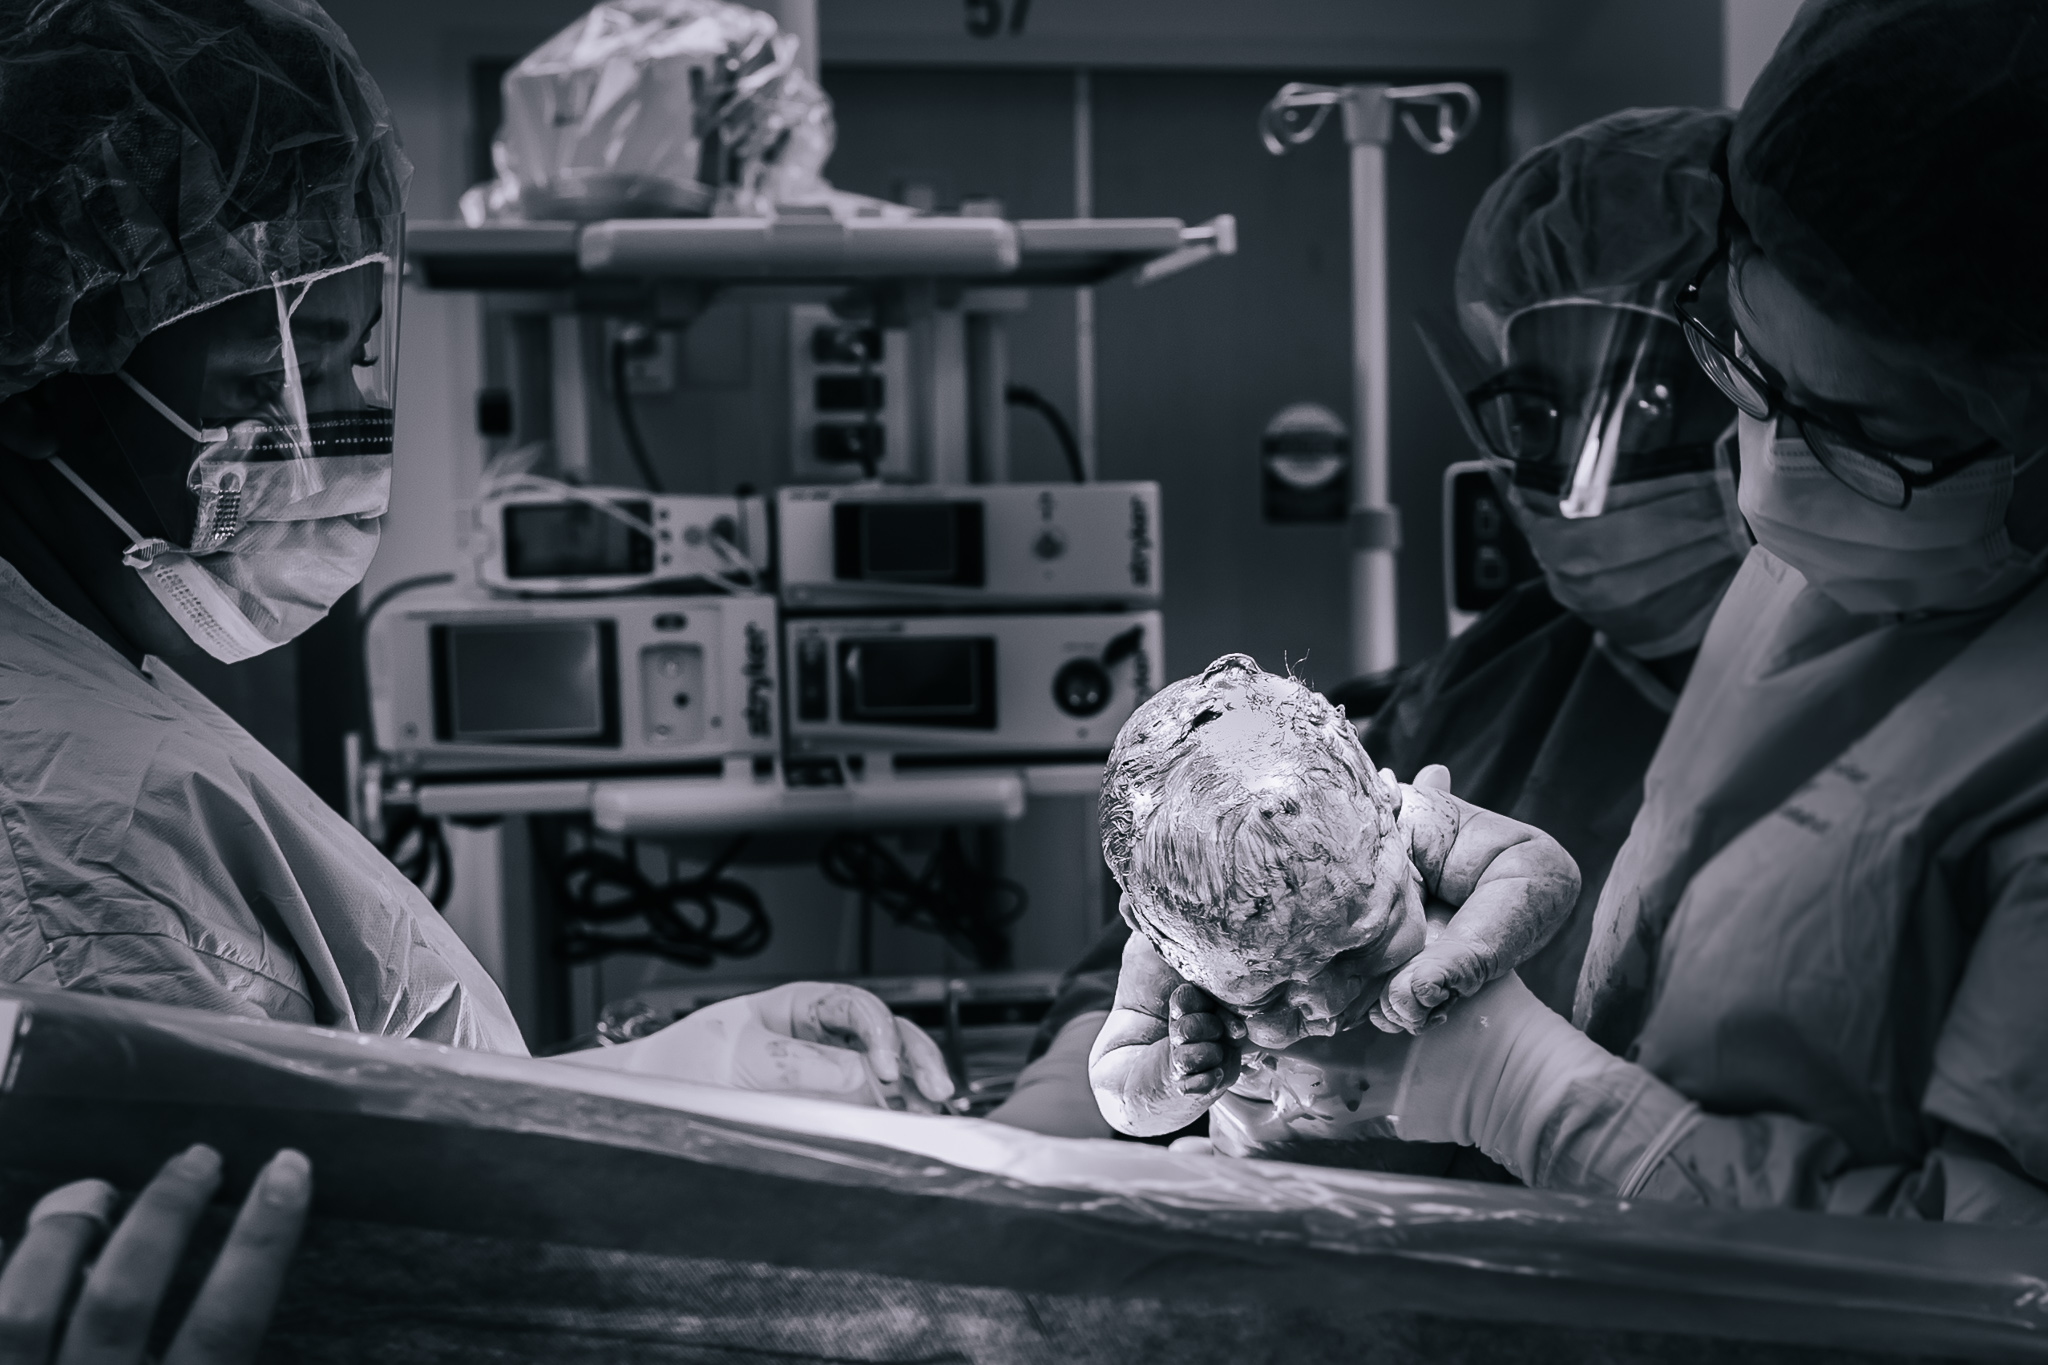 Gentle cesarean section in Buffalo, NY.